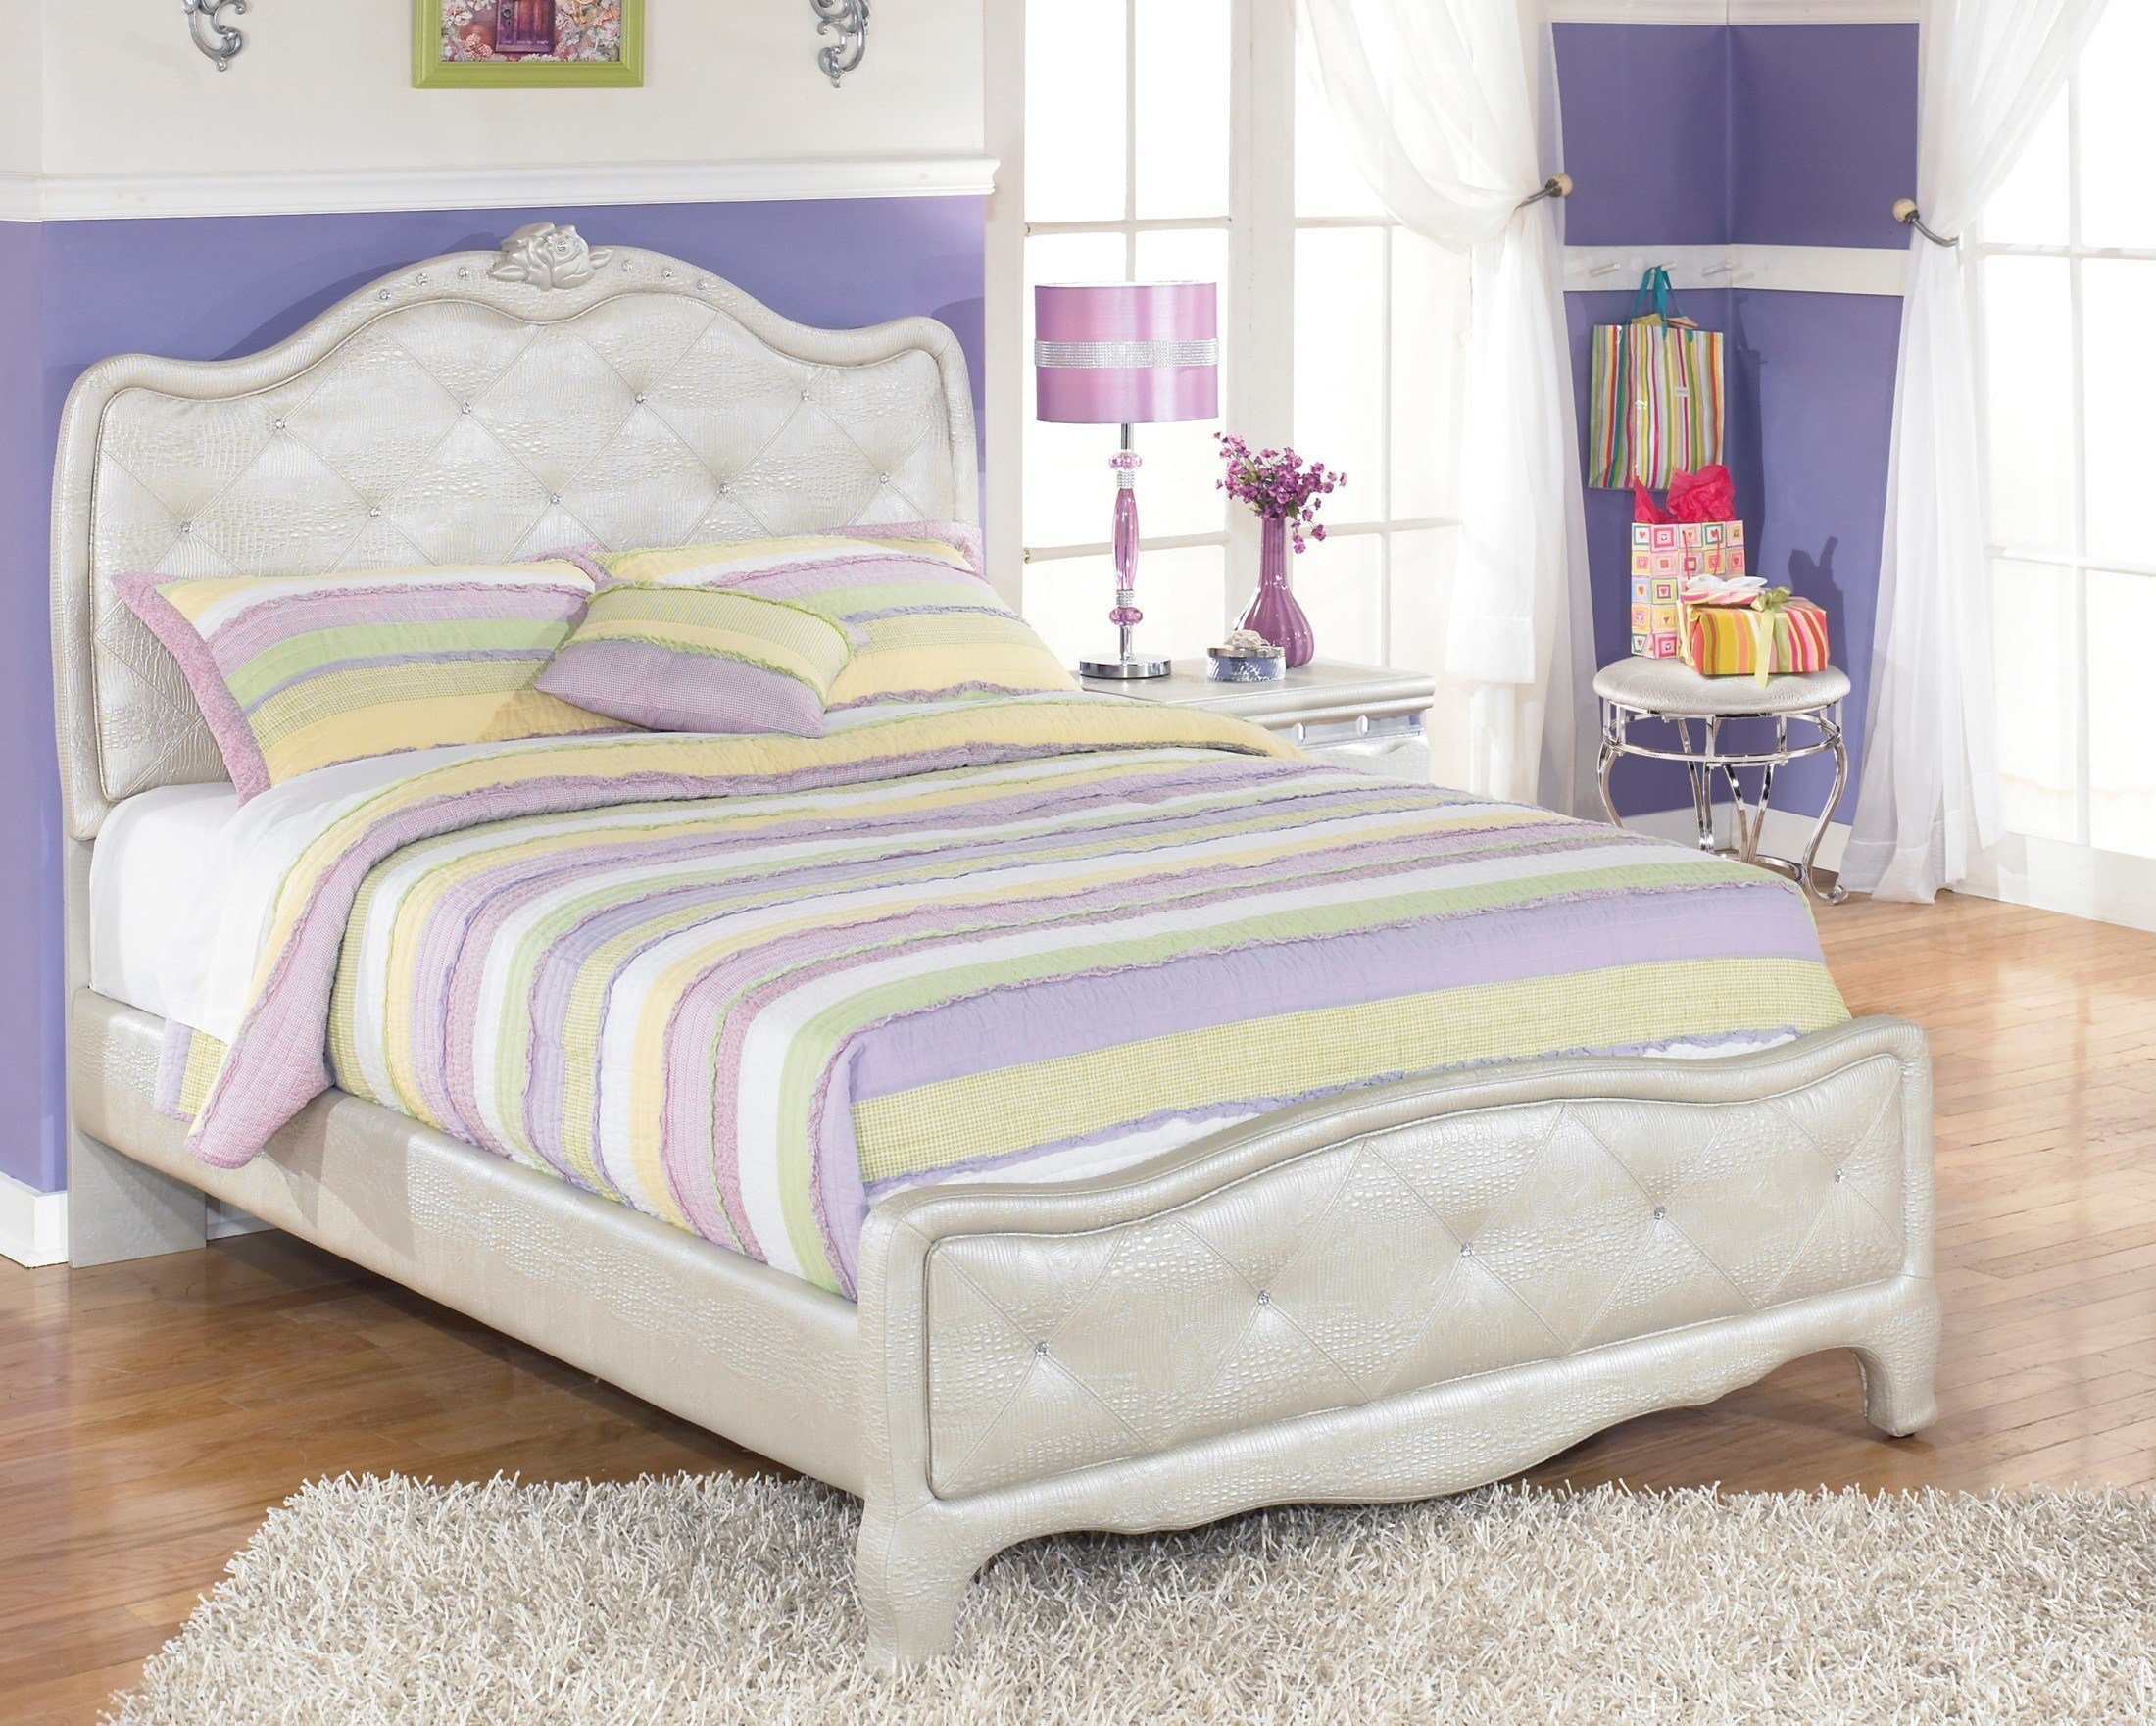 Best Zarollina Youth Upholstered Bedroom Set B182 63 62 With Pictures